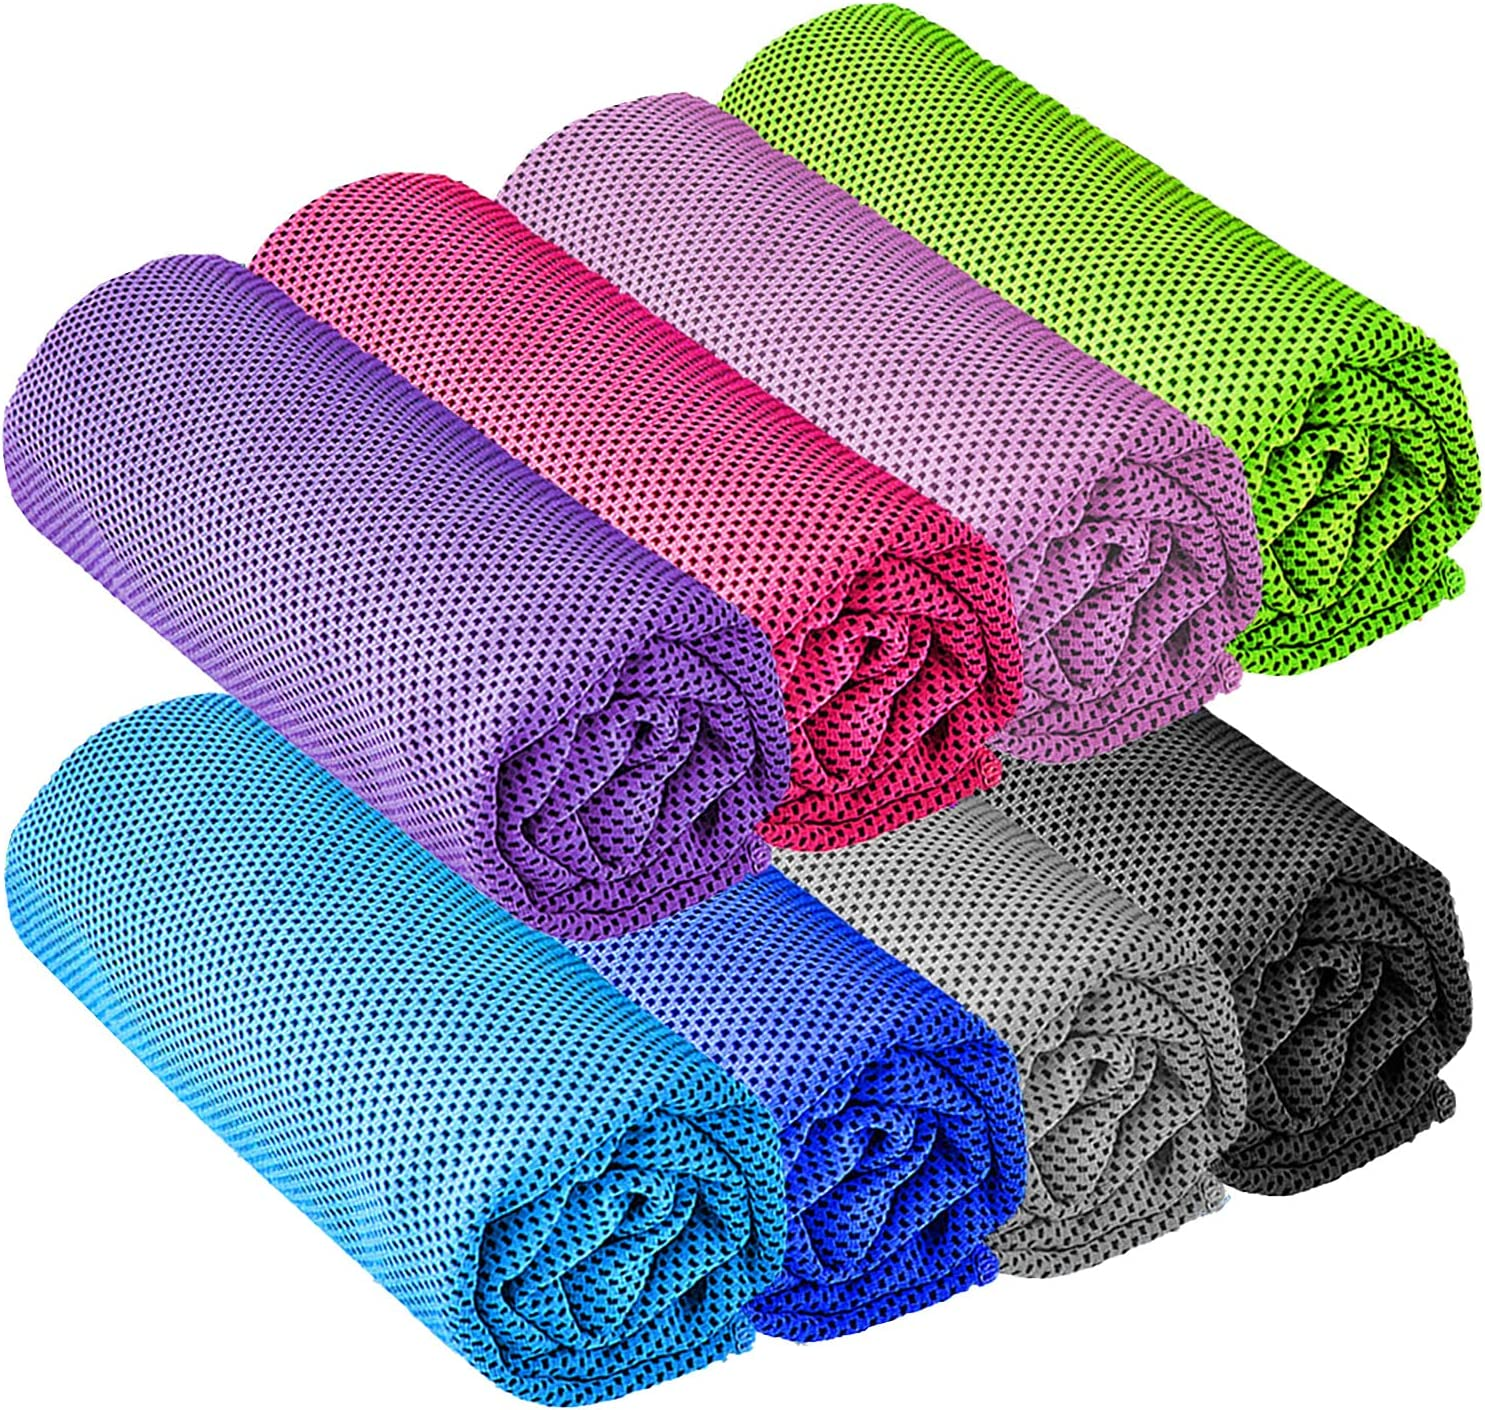 Details about  /Sports Cooling Towel Ice Cold For Fitness Running Jogging Swimming Gym AT 01